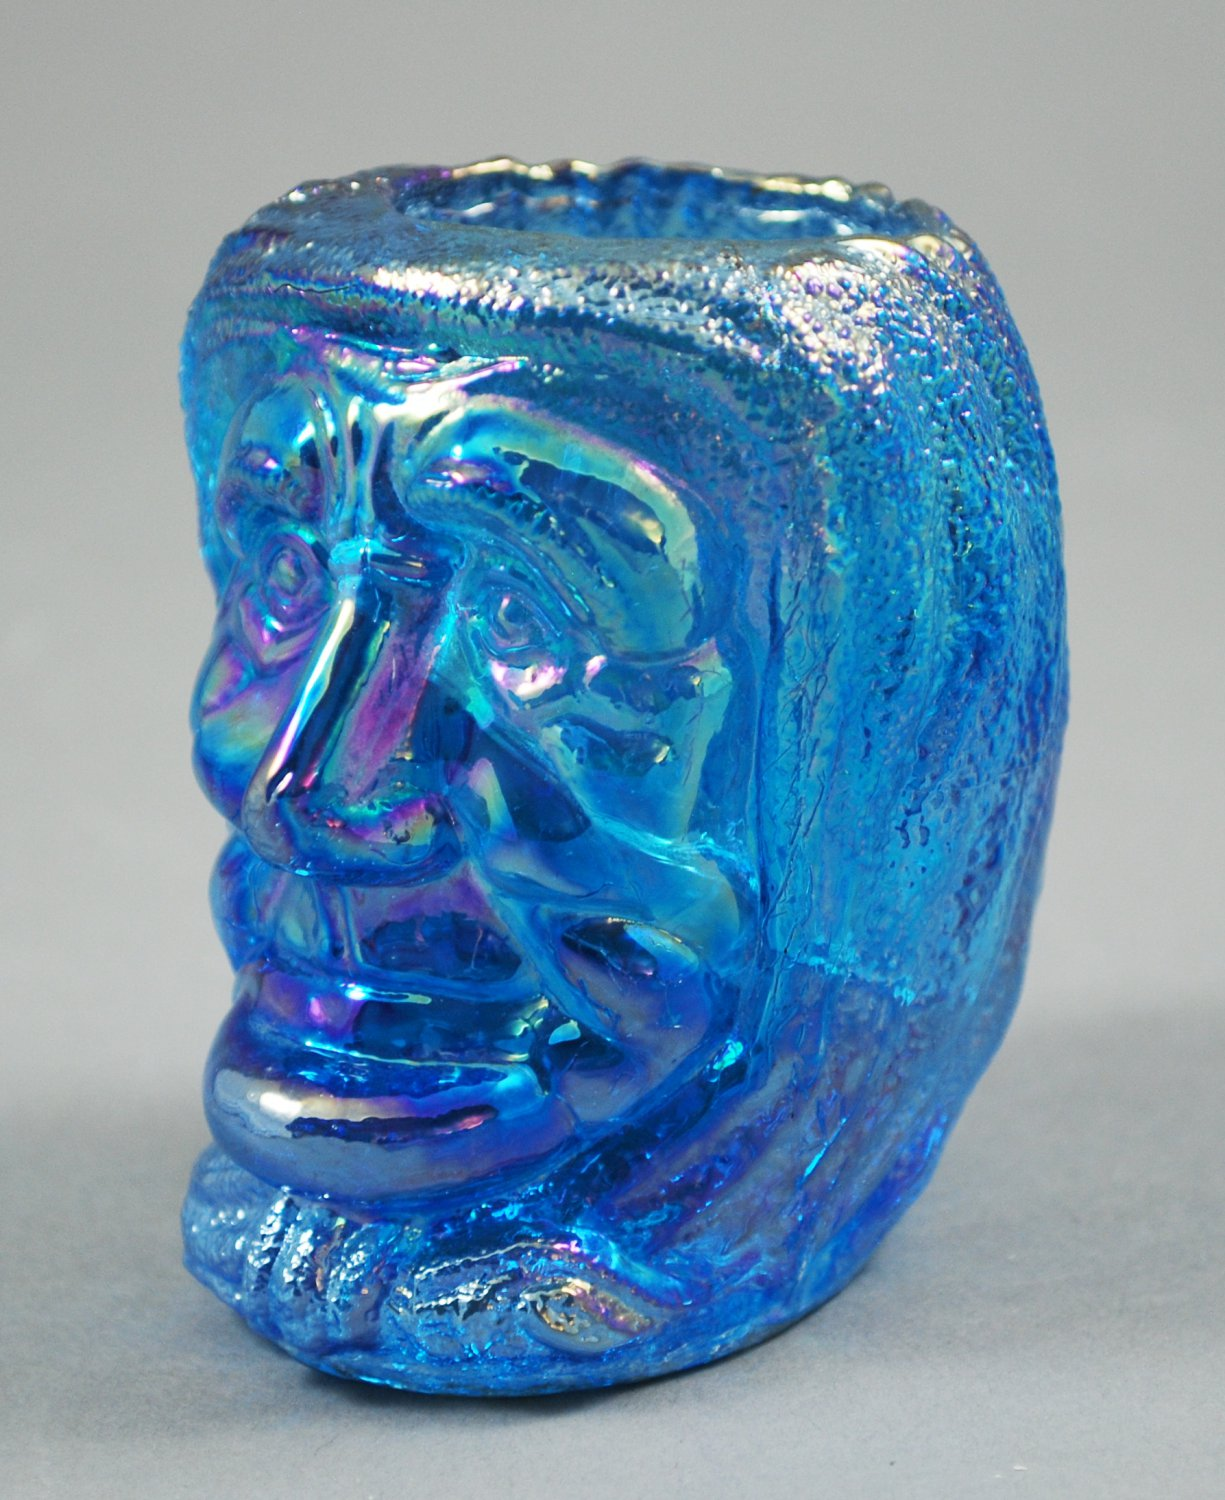 St. Clair Witches Head Celeste Blue Iridescent Toothpick Holder